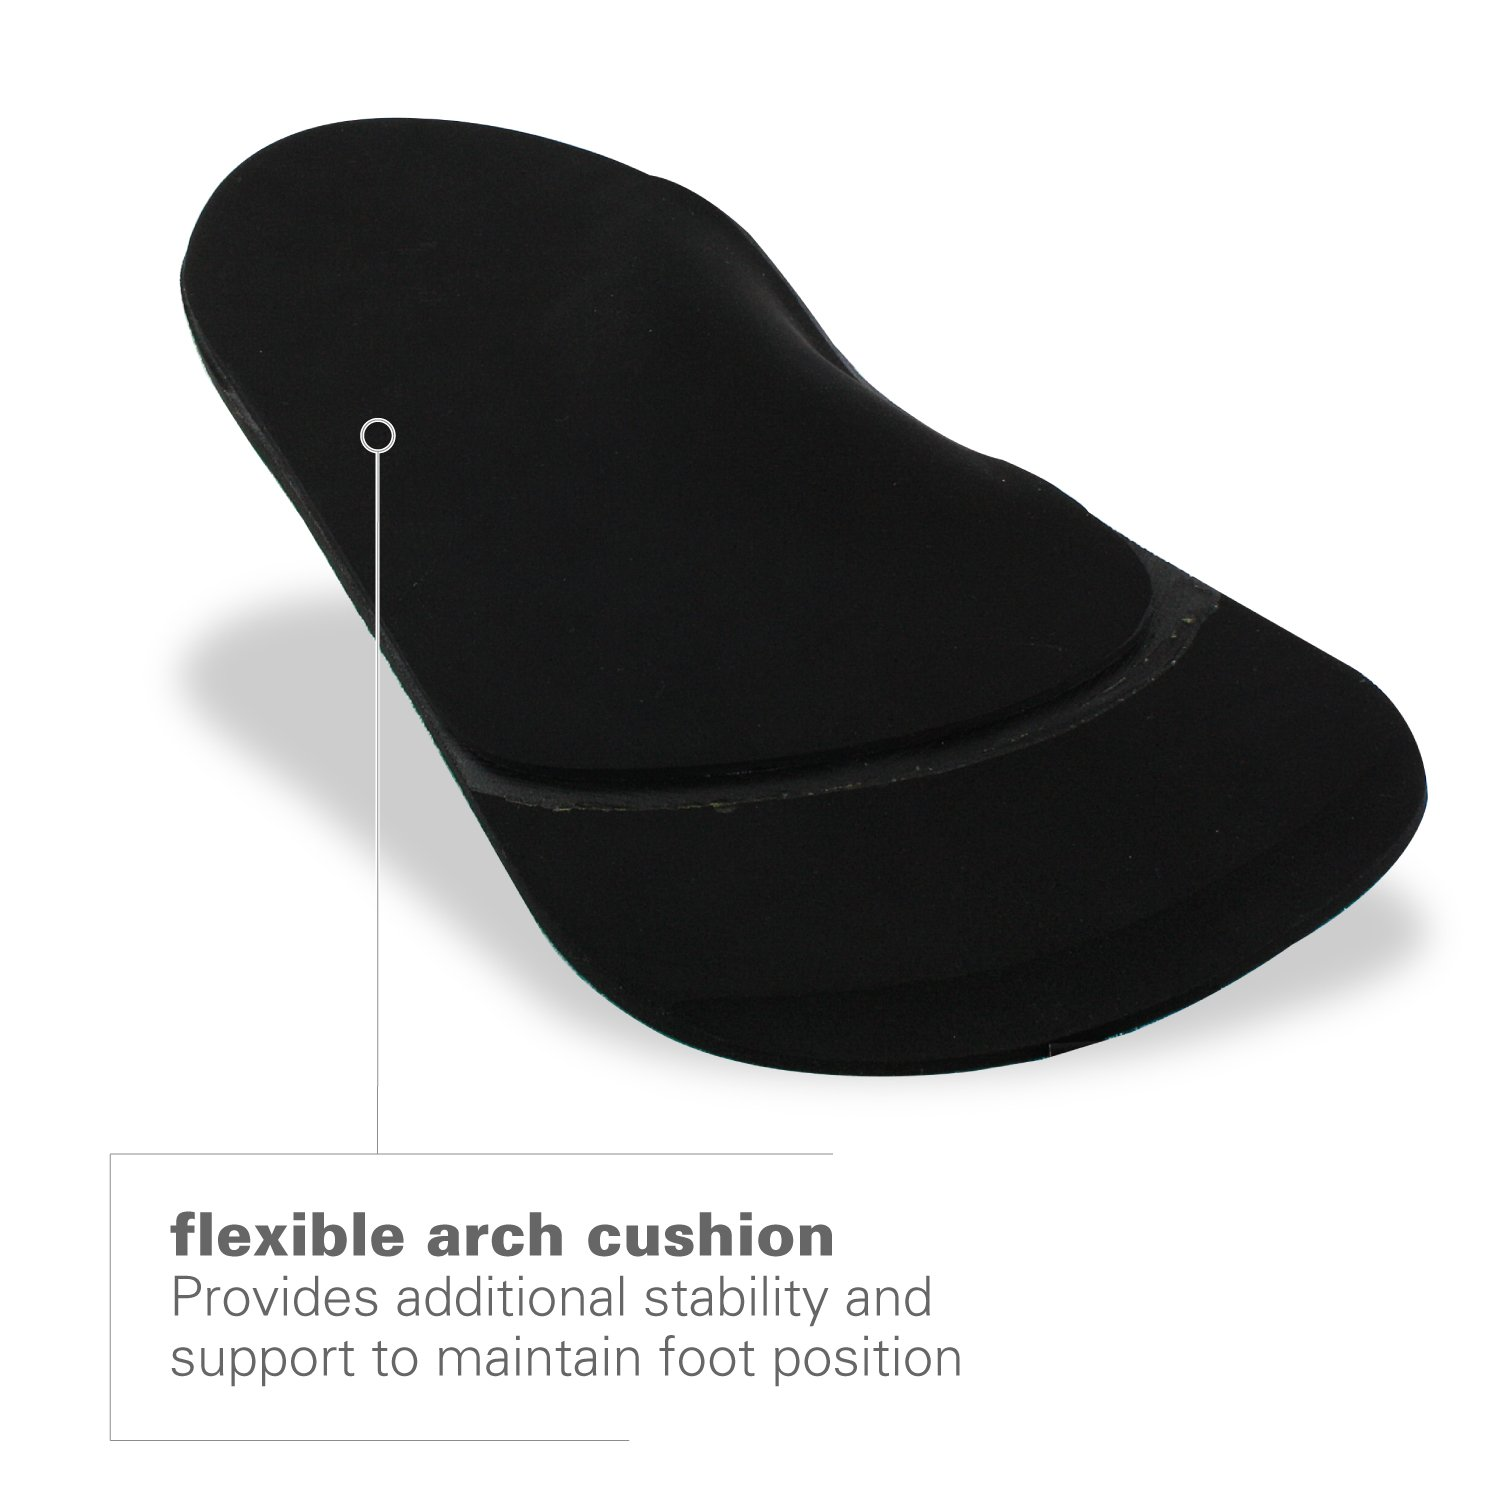 Spenco Rx Arch Cushion 3/4 Length Comfort Support Shoe Insole, Women's 5-6.5 by Spenco (Image #4)